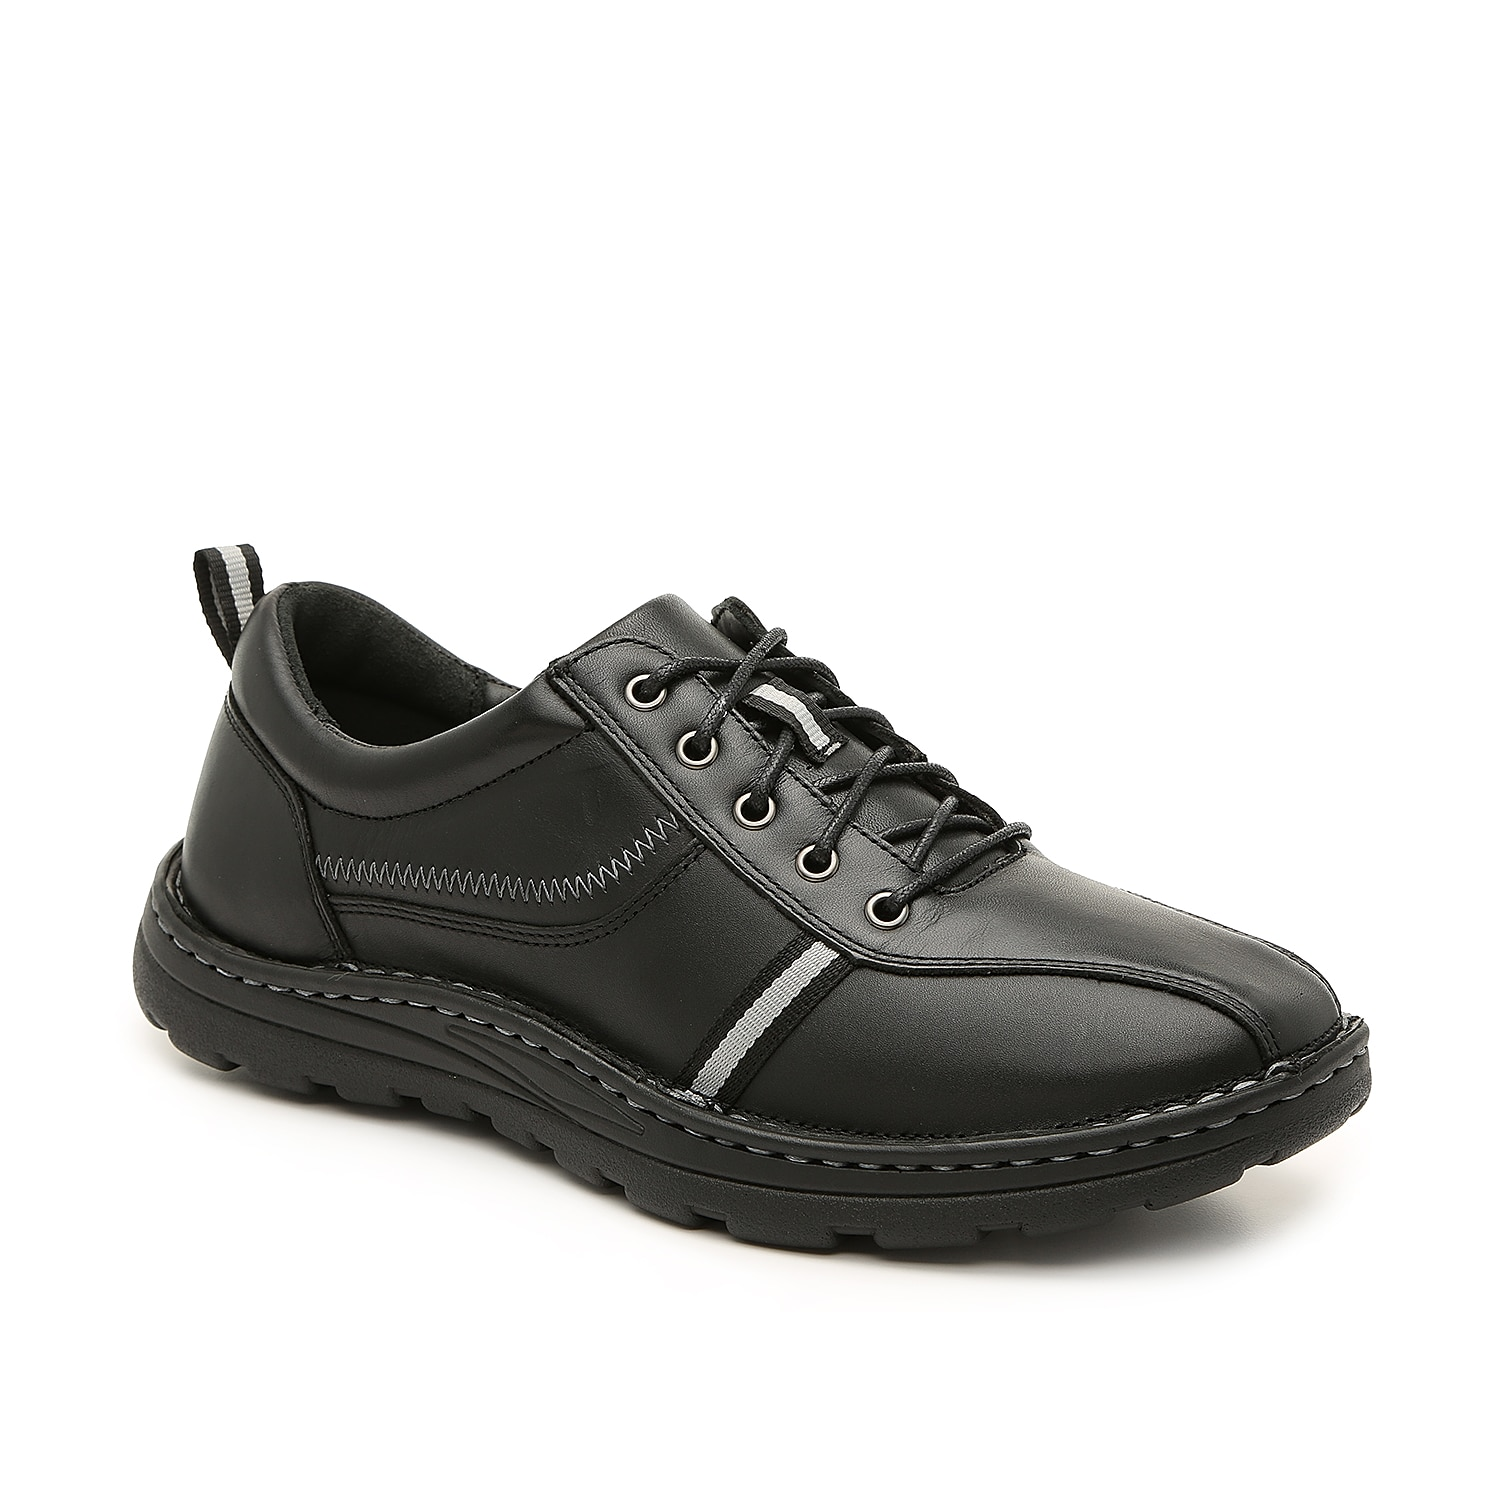 The Hogan oxford from Drew will step up your casual shoe collection. The leather upper, lace-up styling, and contoured cushioned insole will easily pair with your rotating wardrobe.